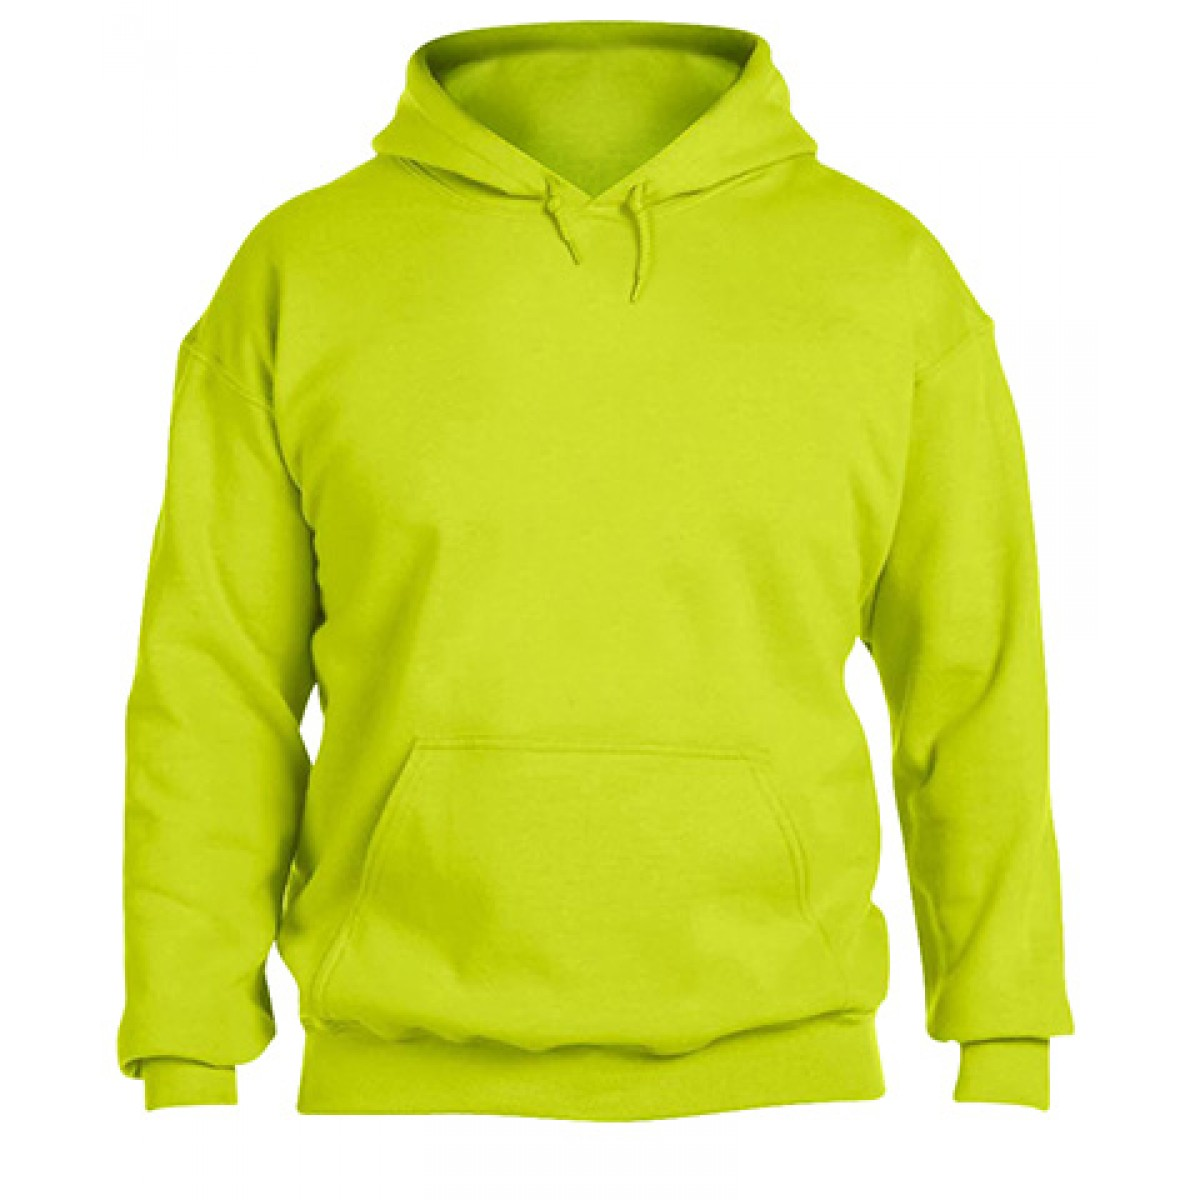 Hooded Sweatshirt 50/50 Heavy Blend-Safety Green-S